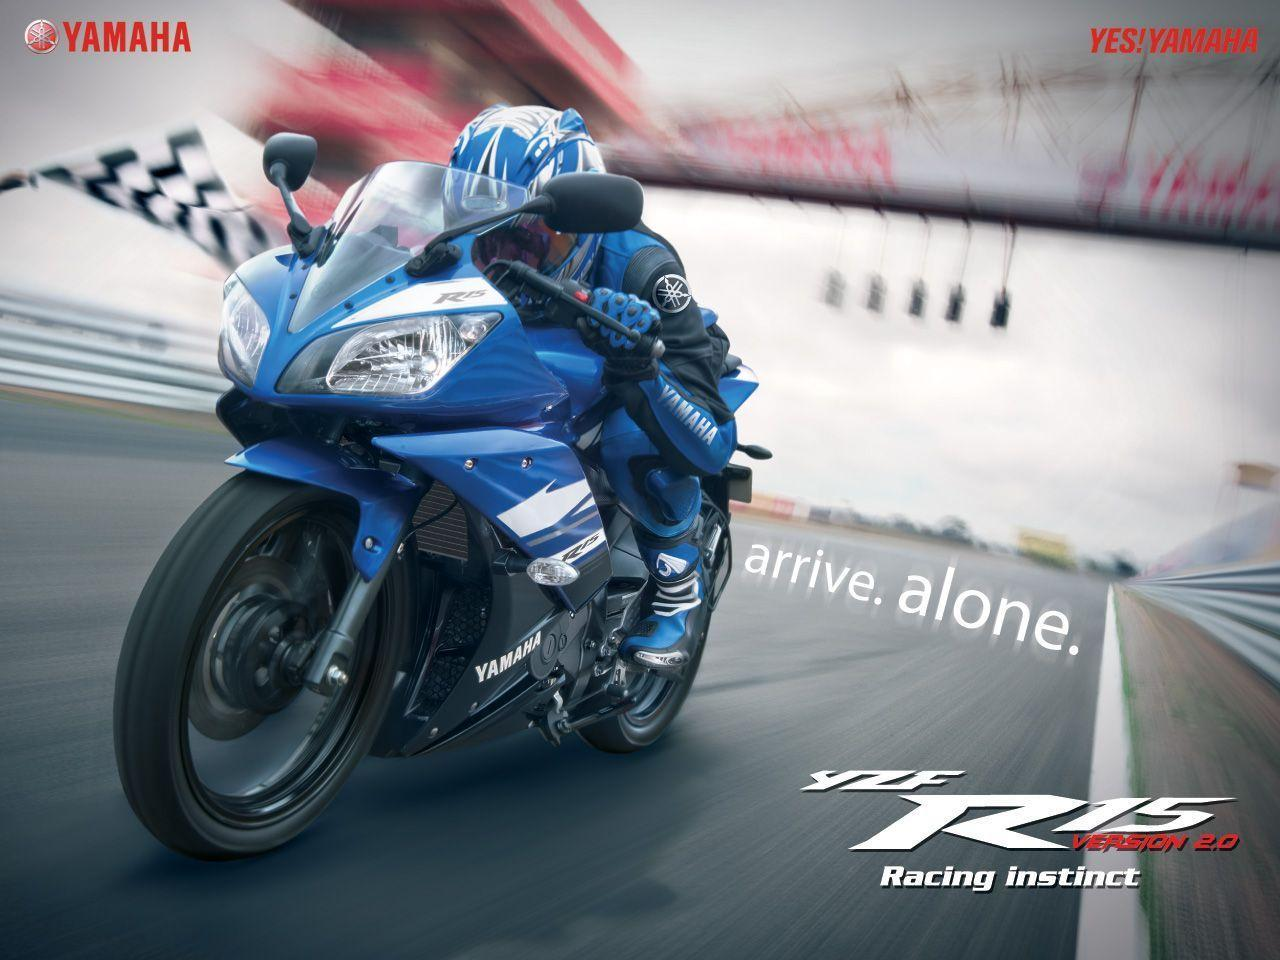 New R15 Image, Wallpapers and Photos